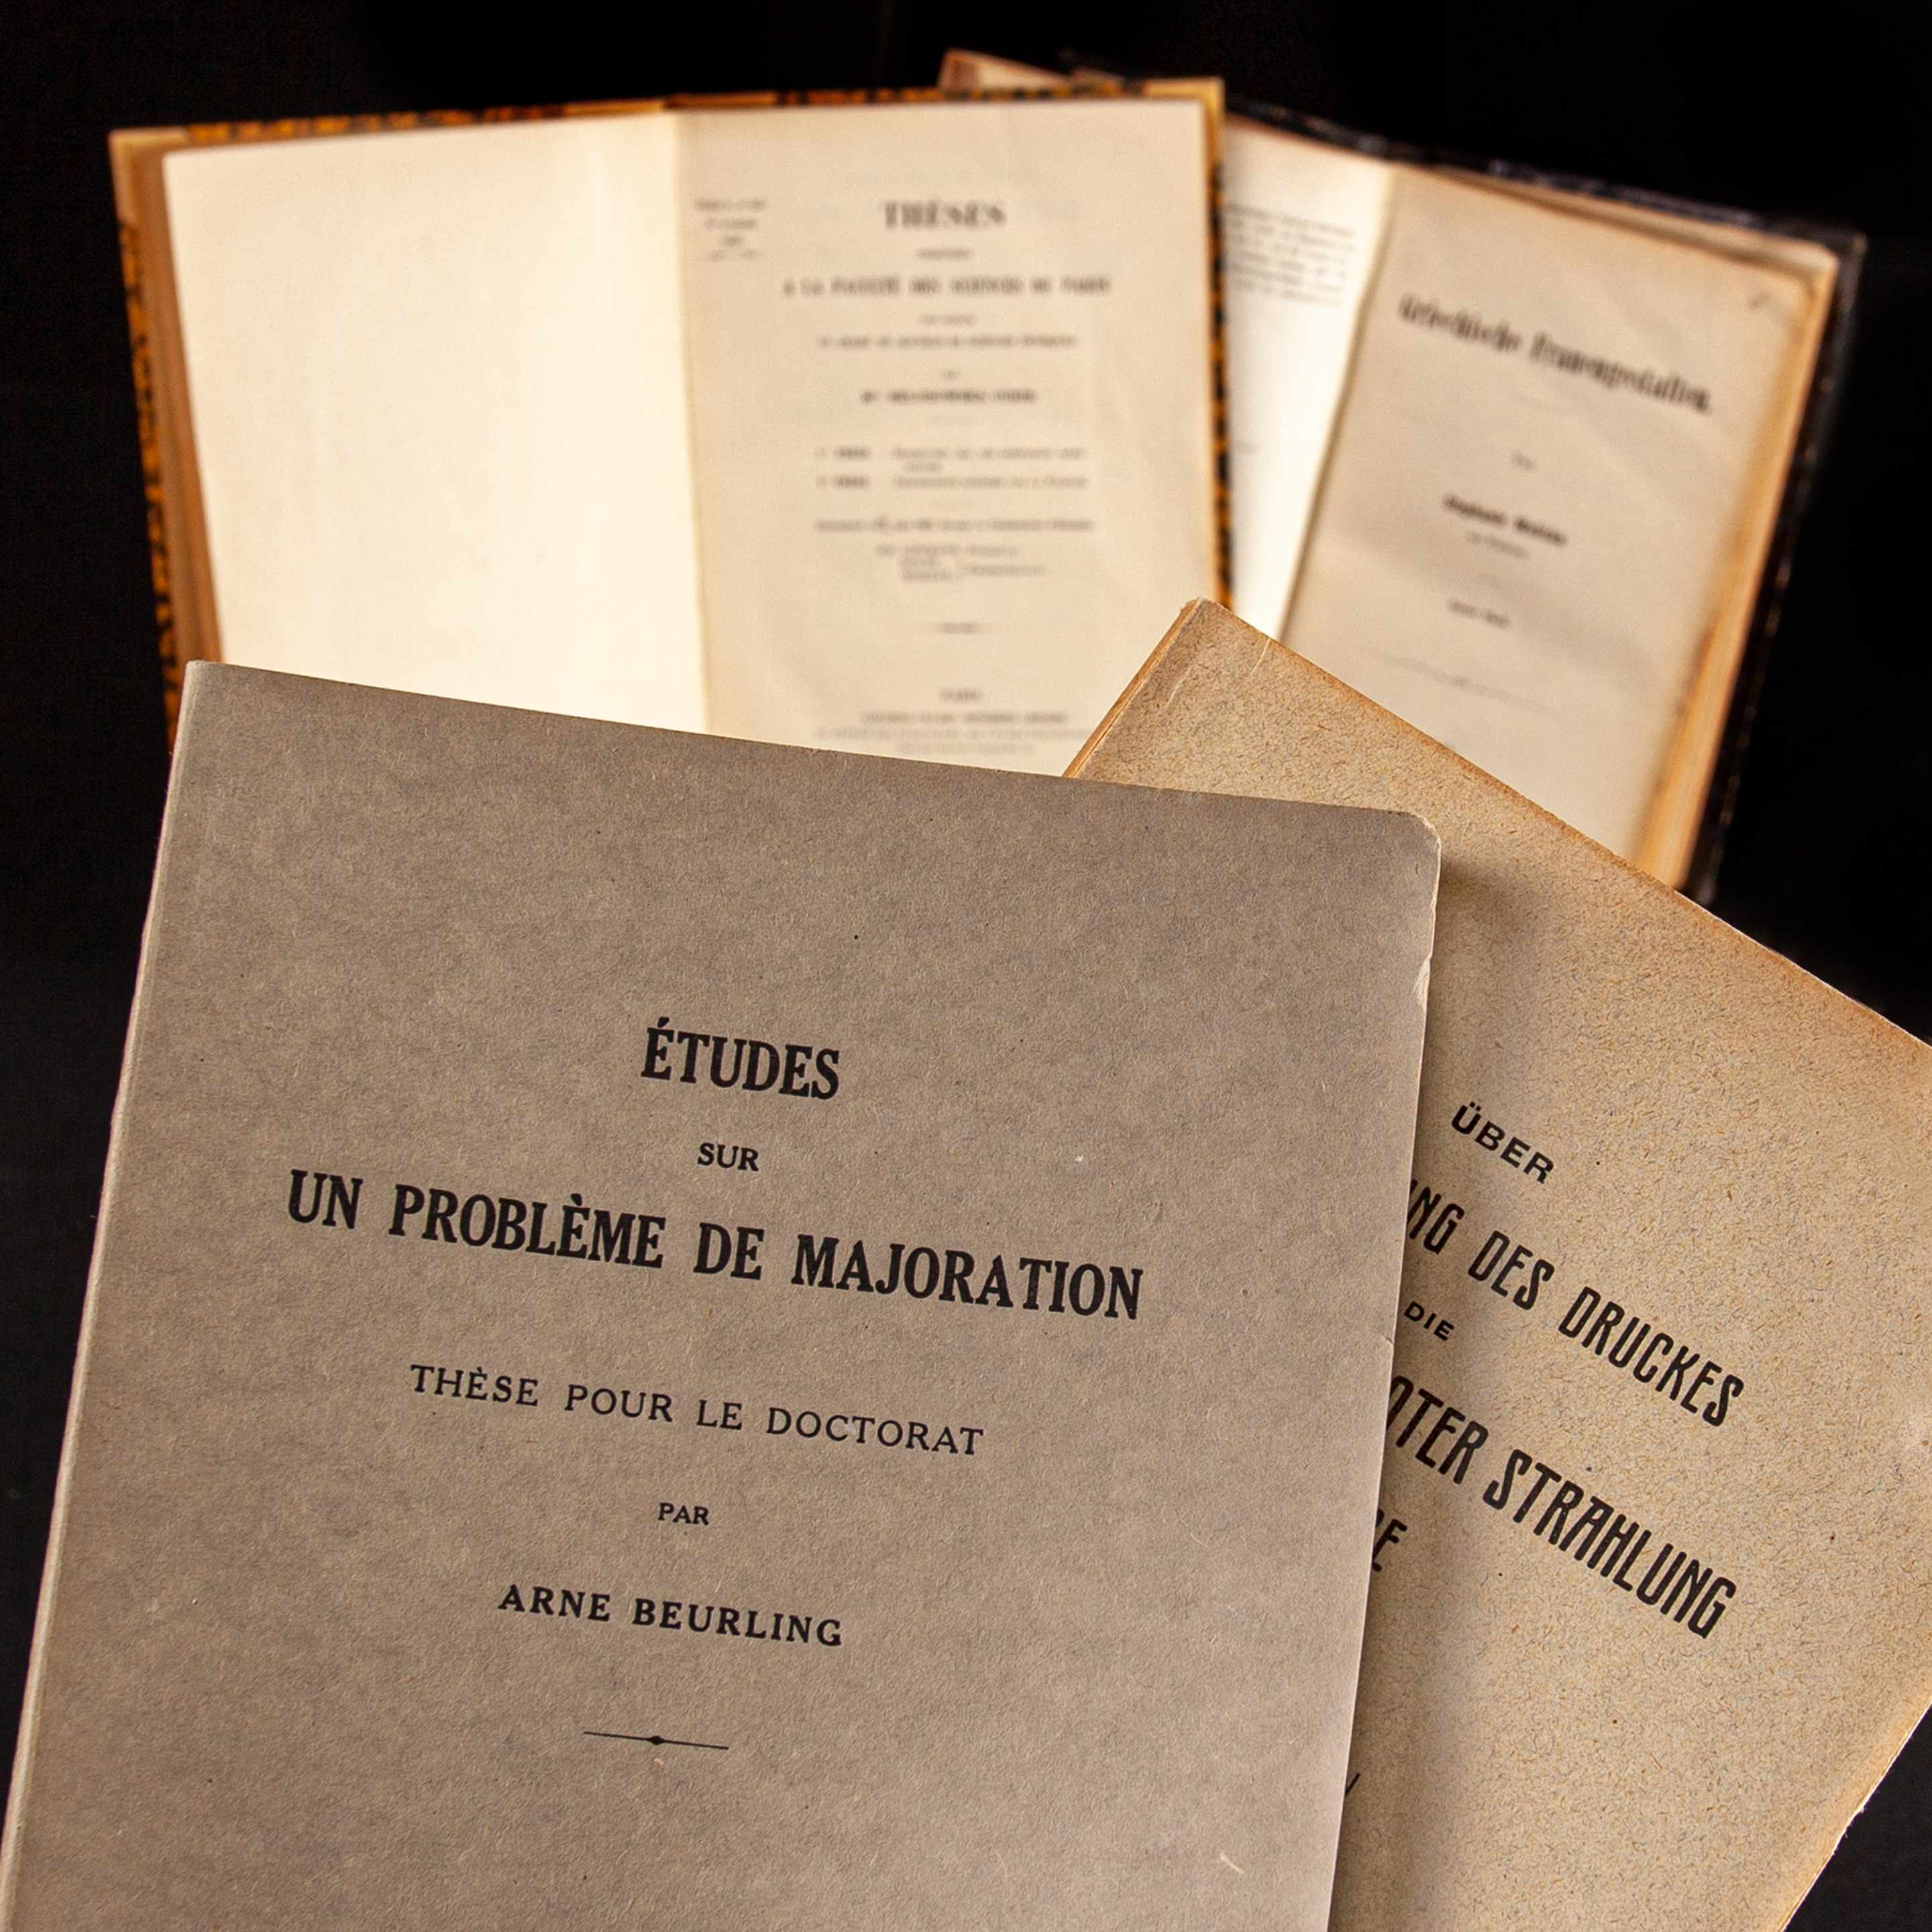 Grey and brown volumes containing scientific dissertations